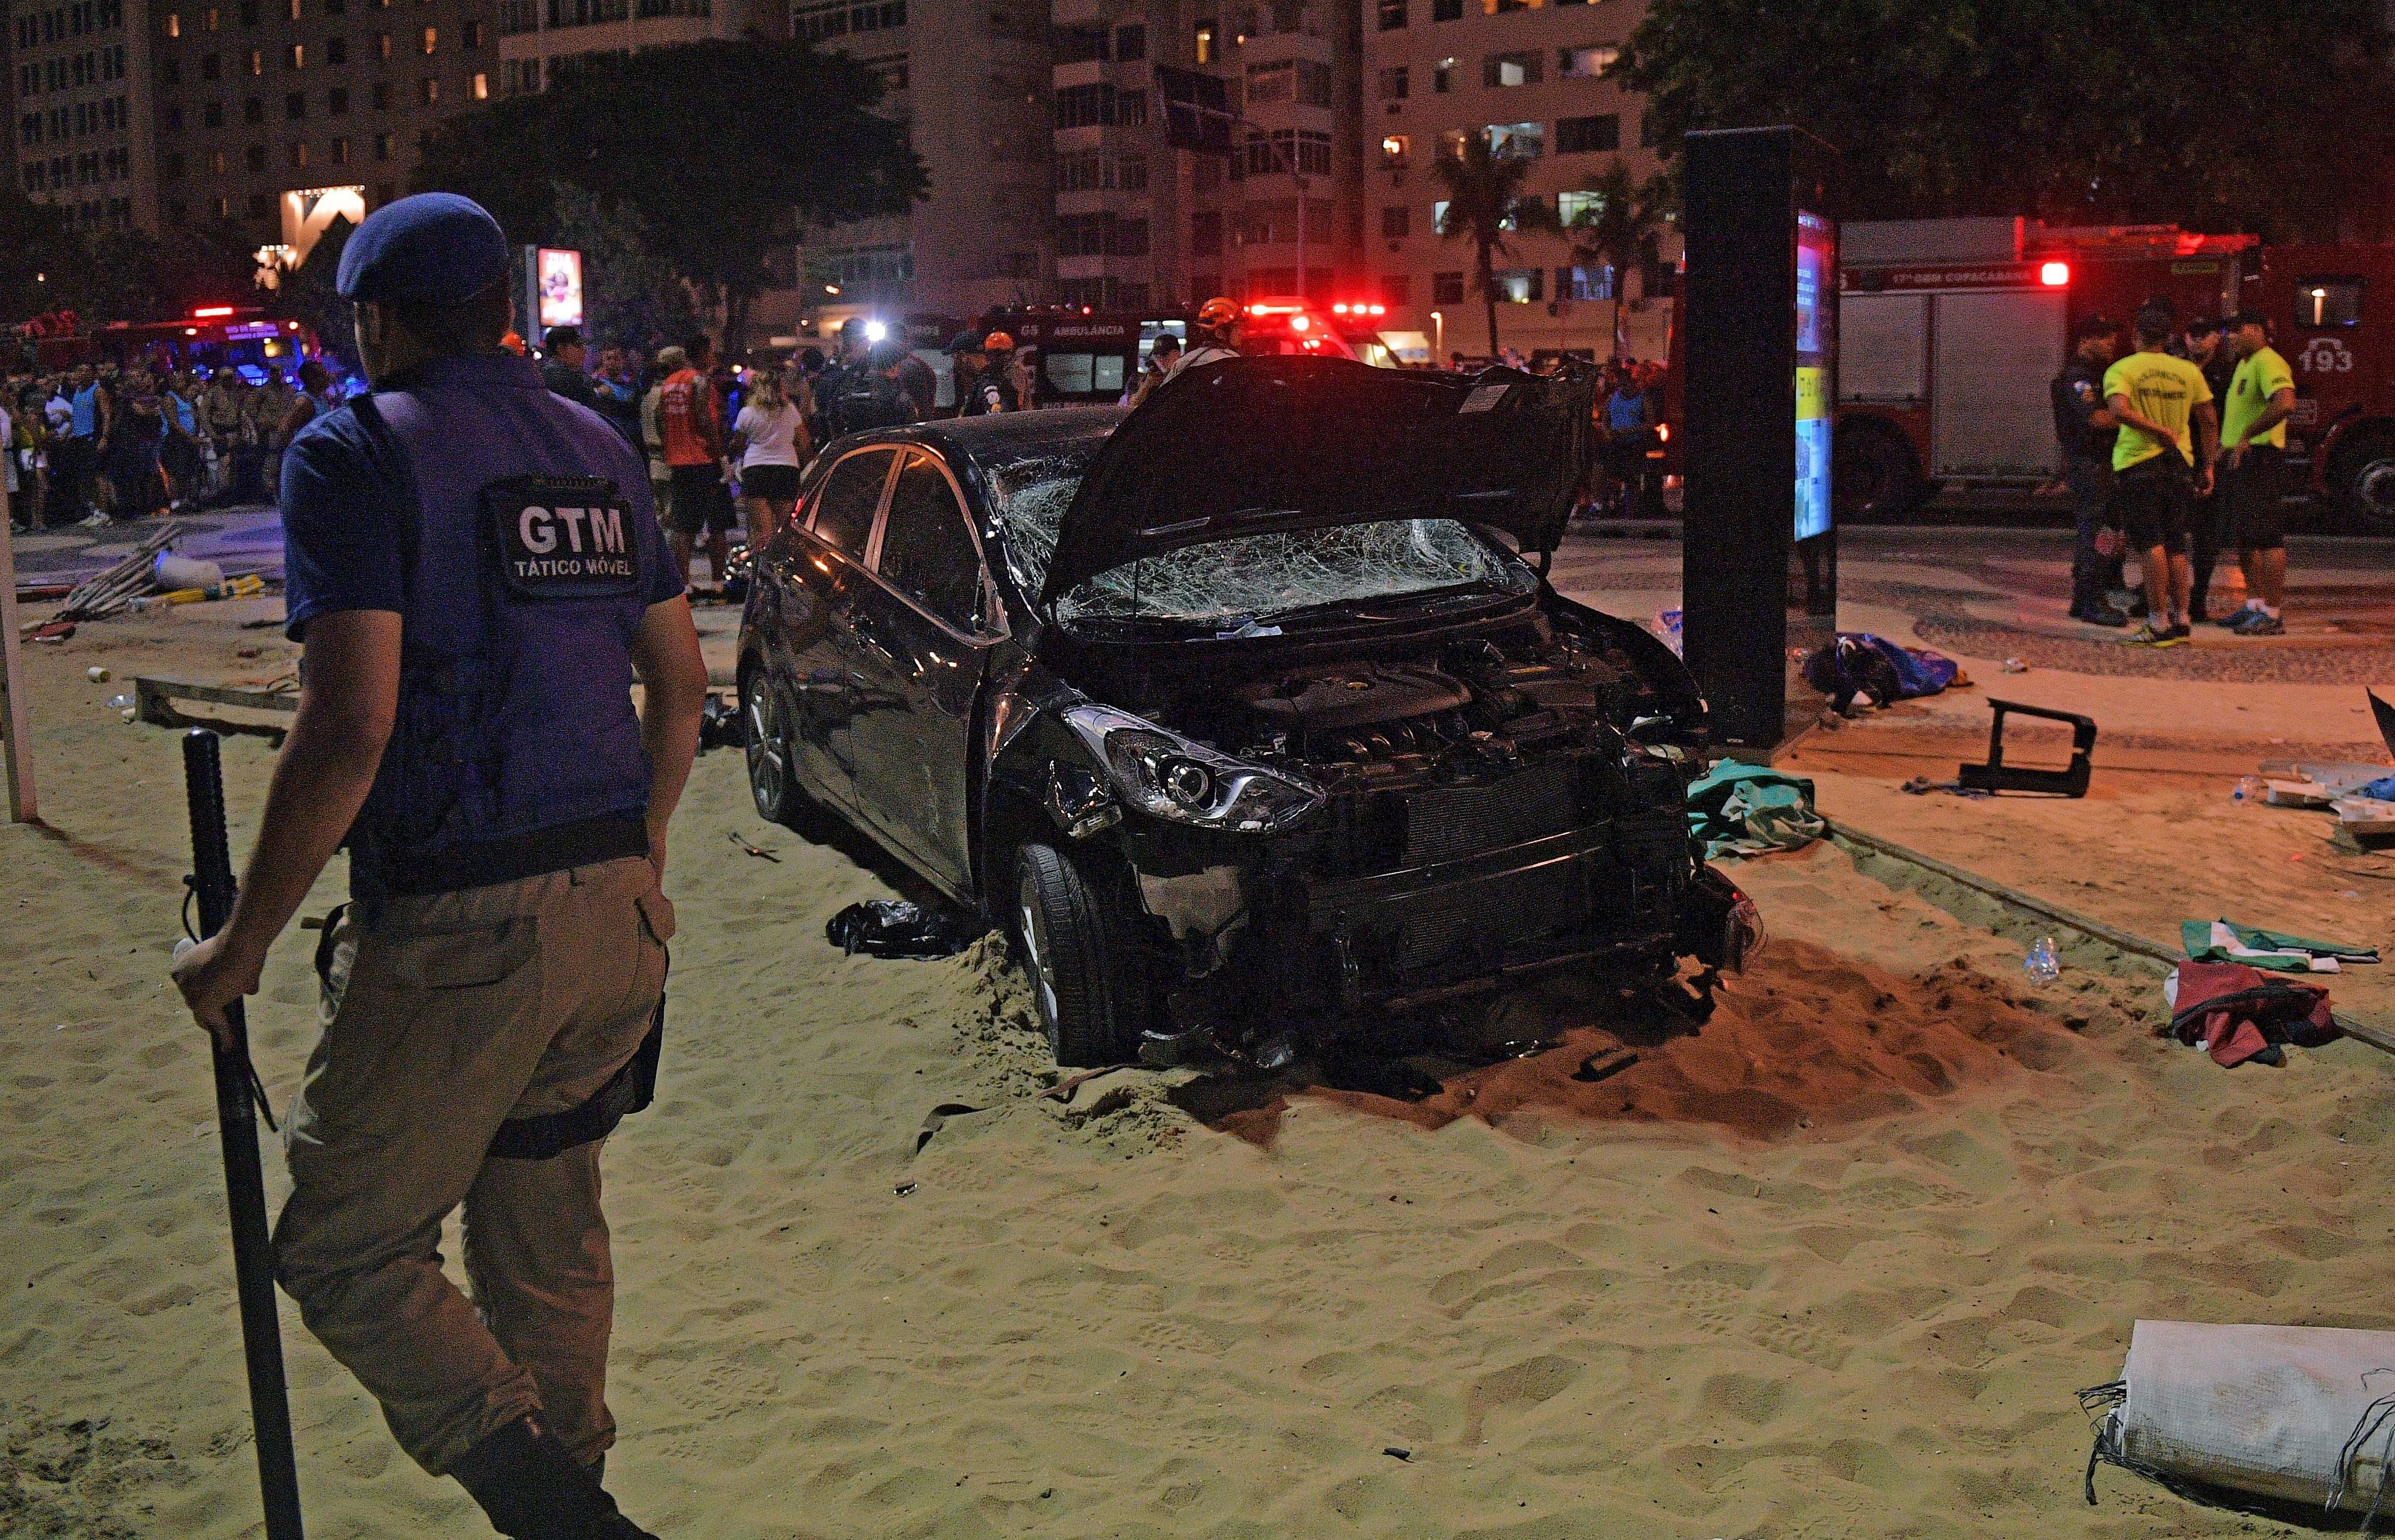 The scene of a car crash pictured at Copacabana beach in Rio de Janeiro on January 18, 2018. At least 11 people were injured by a car that drove up onto Copacabana's tourist-packed seafront promenade in the heart of Rio de Janeiro. / AFP PHOTO / CARL DE SOUZA        (Photo credit should read CARL DE SOUZA/AFP/Getty Images)